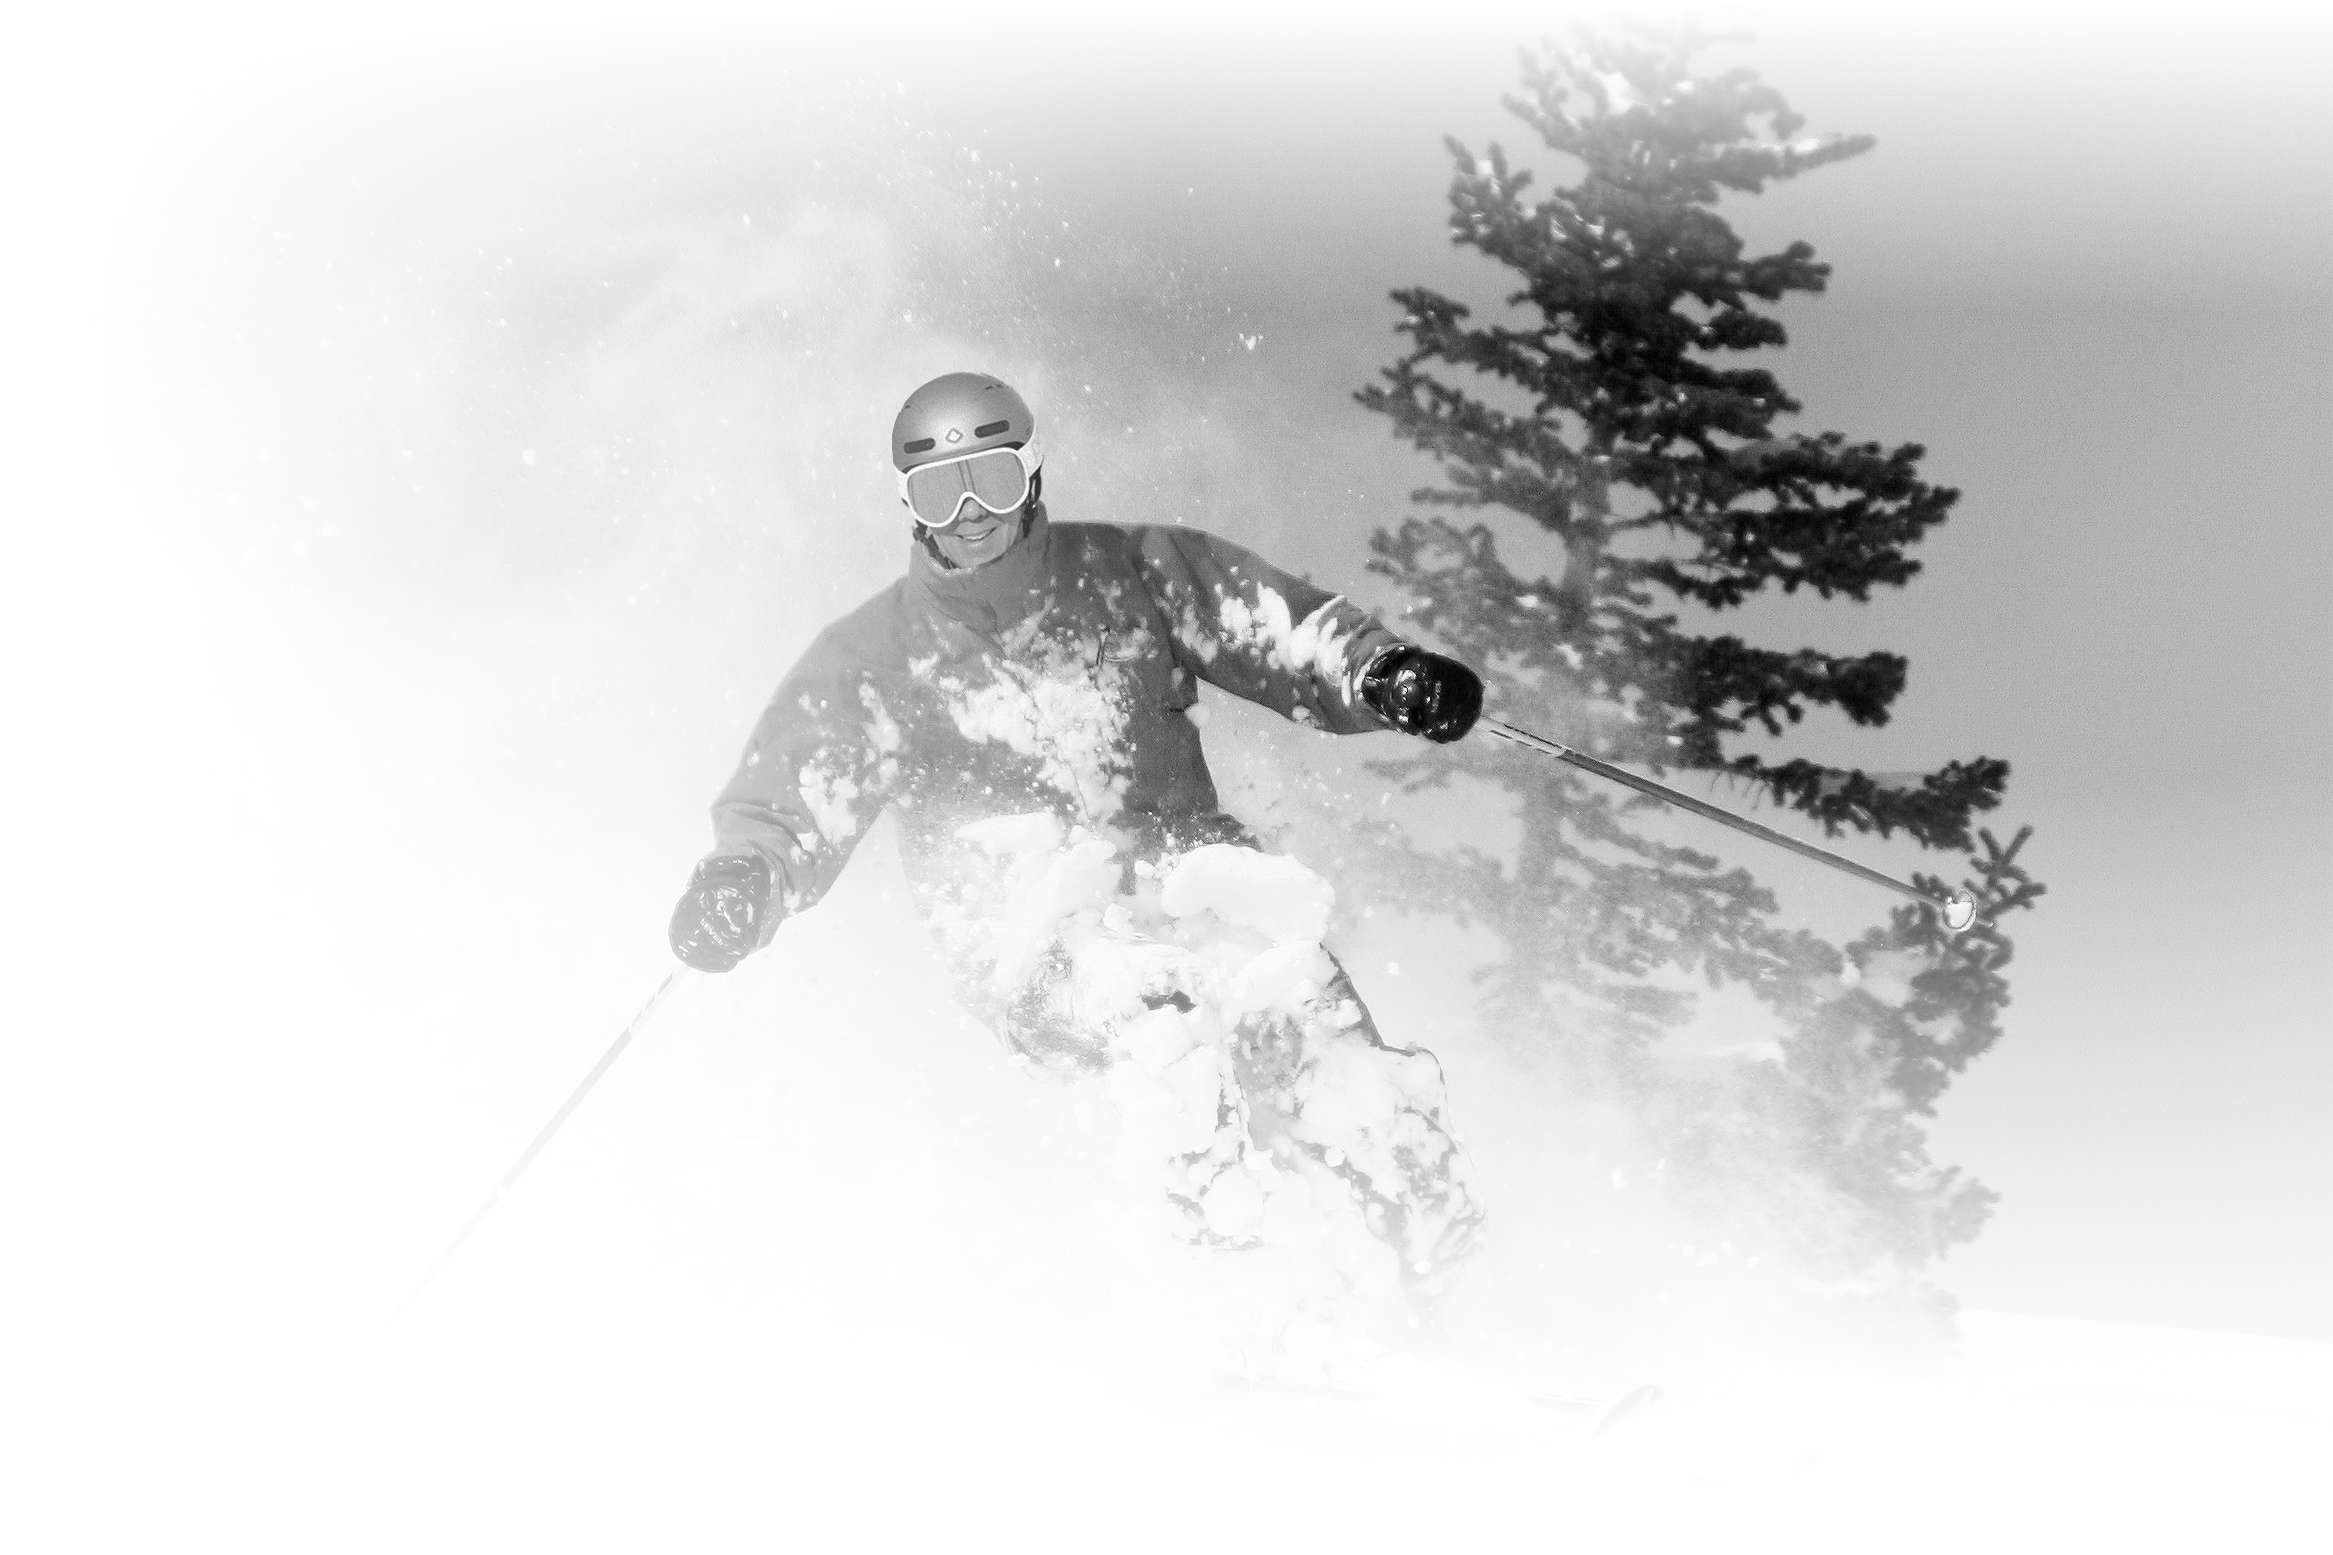 A ski instructor from the Alf Engen ski school enjoys some powder turns at Alta Ski Area